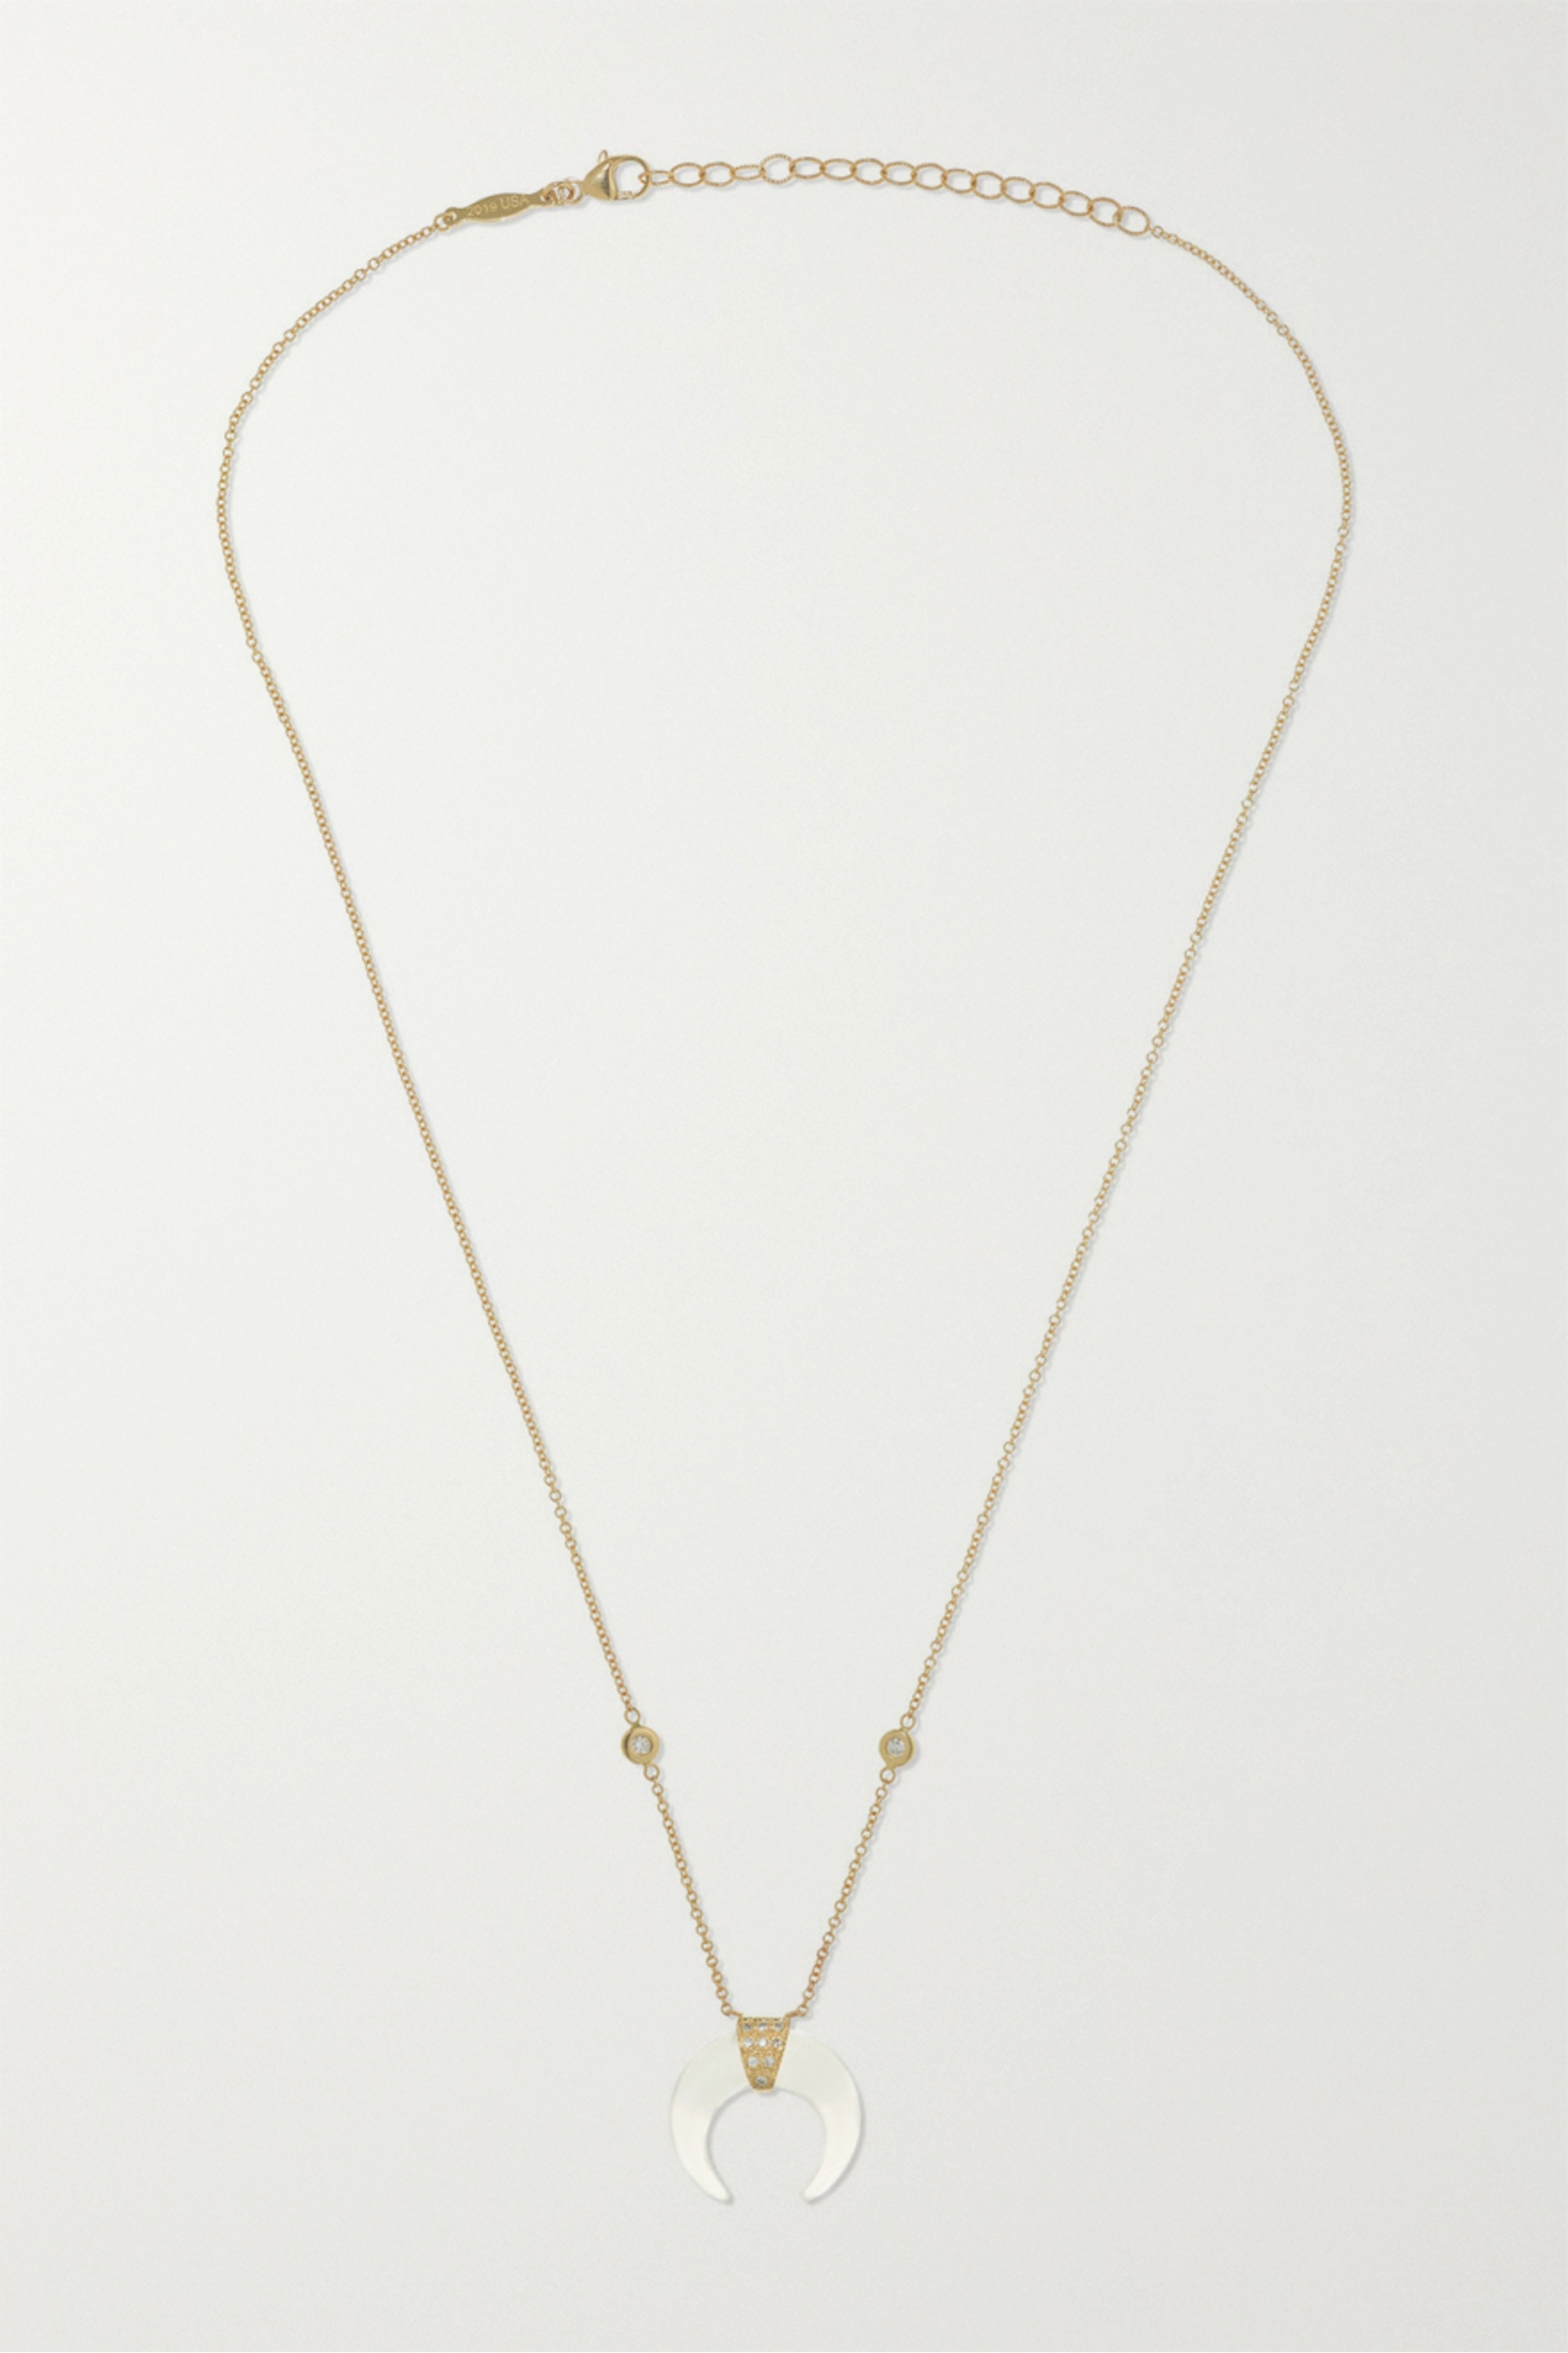 Jacquie Aiche Mini Double Horn 14-karat gold, moonstone and diamond necklace